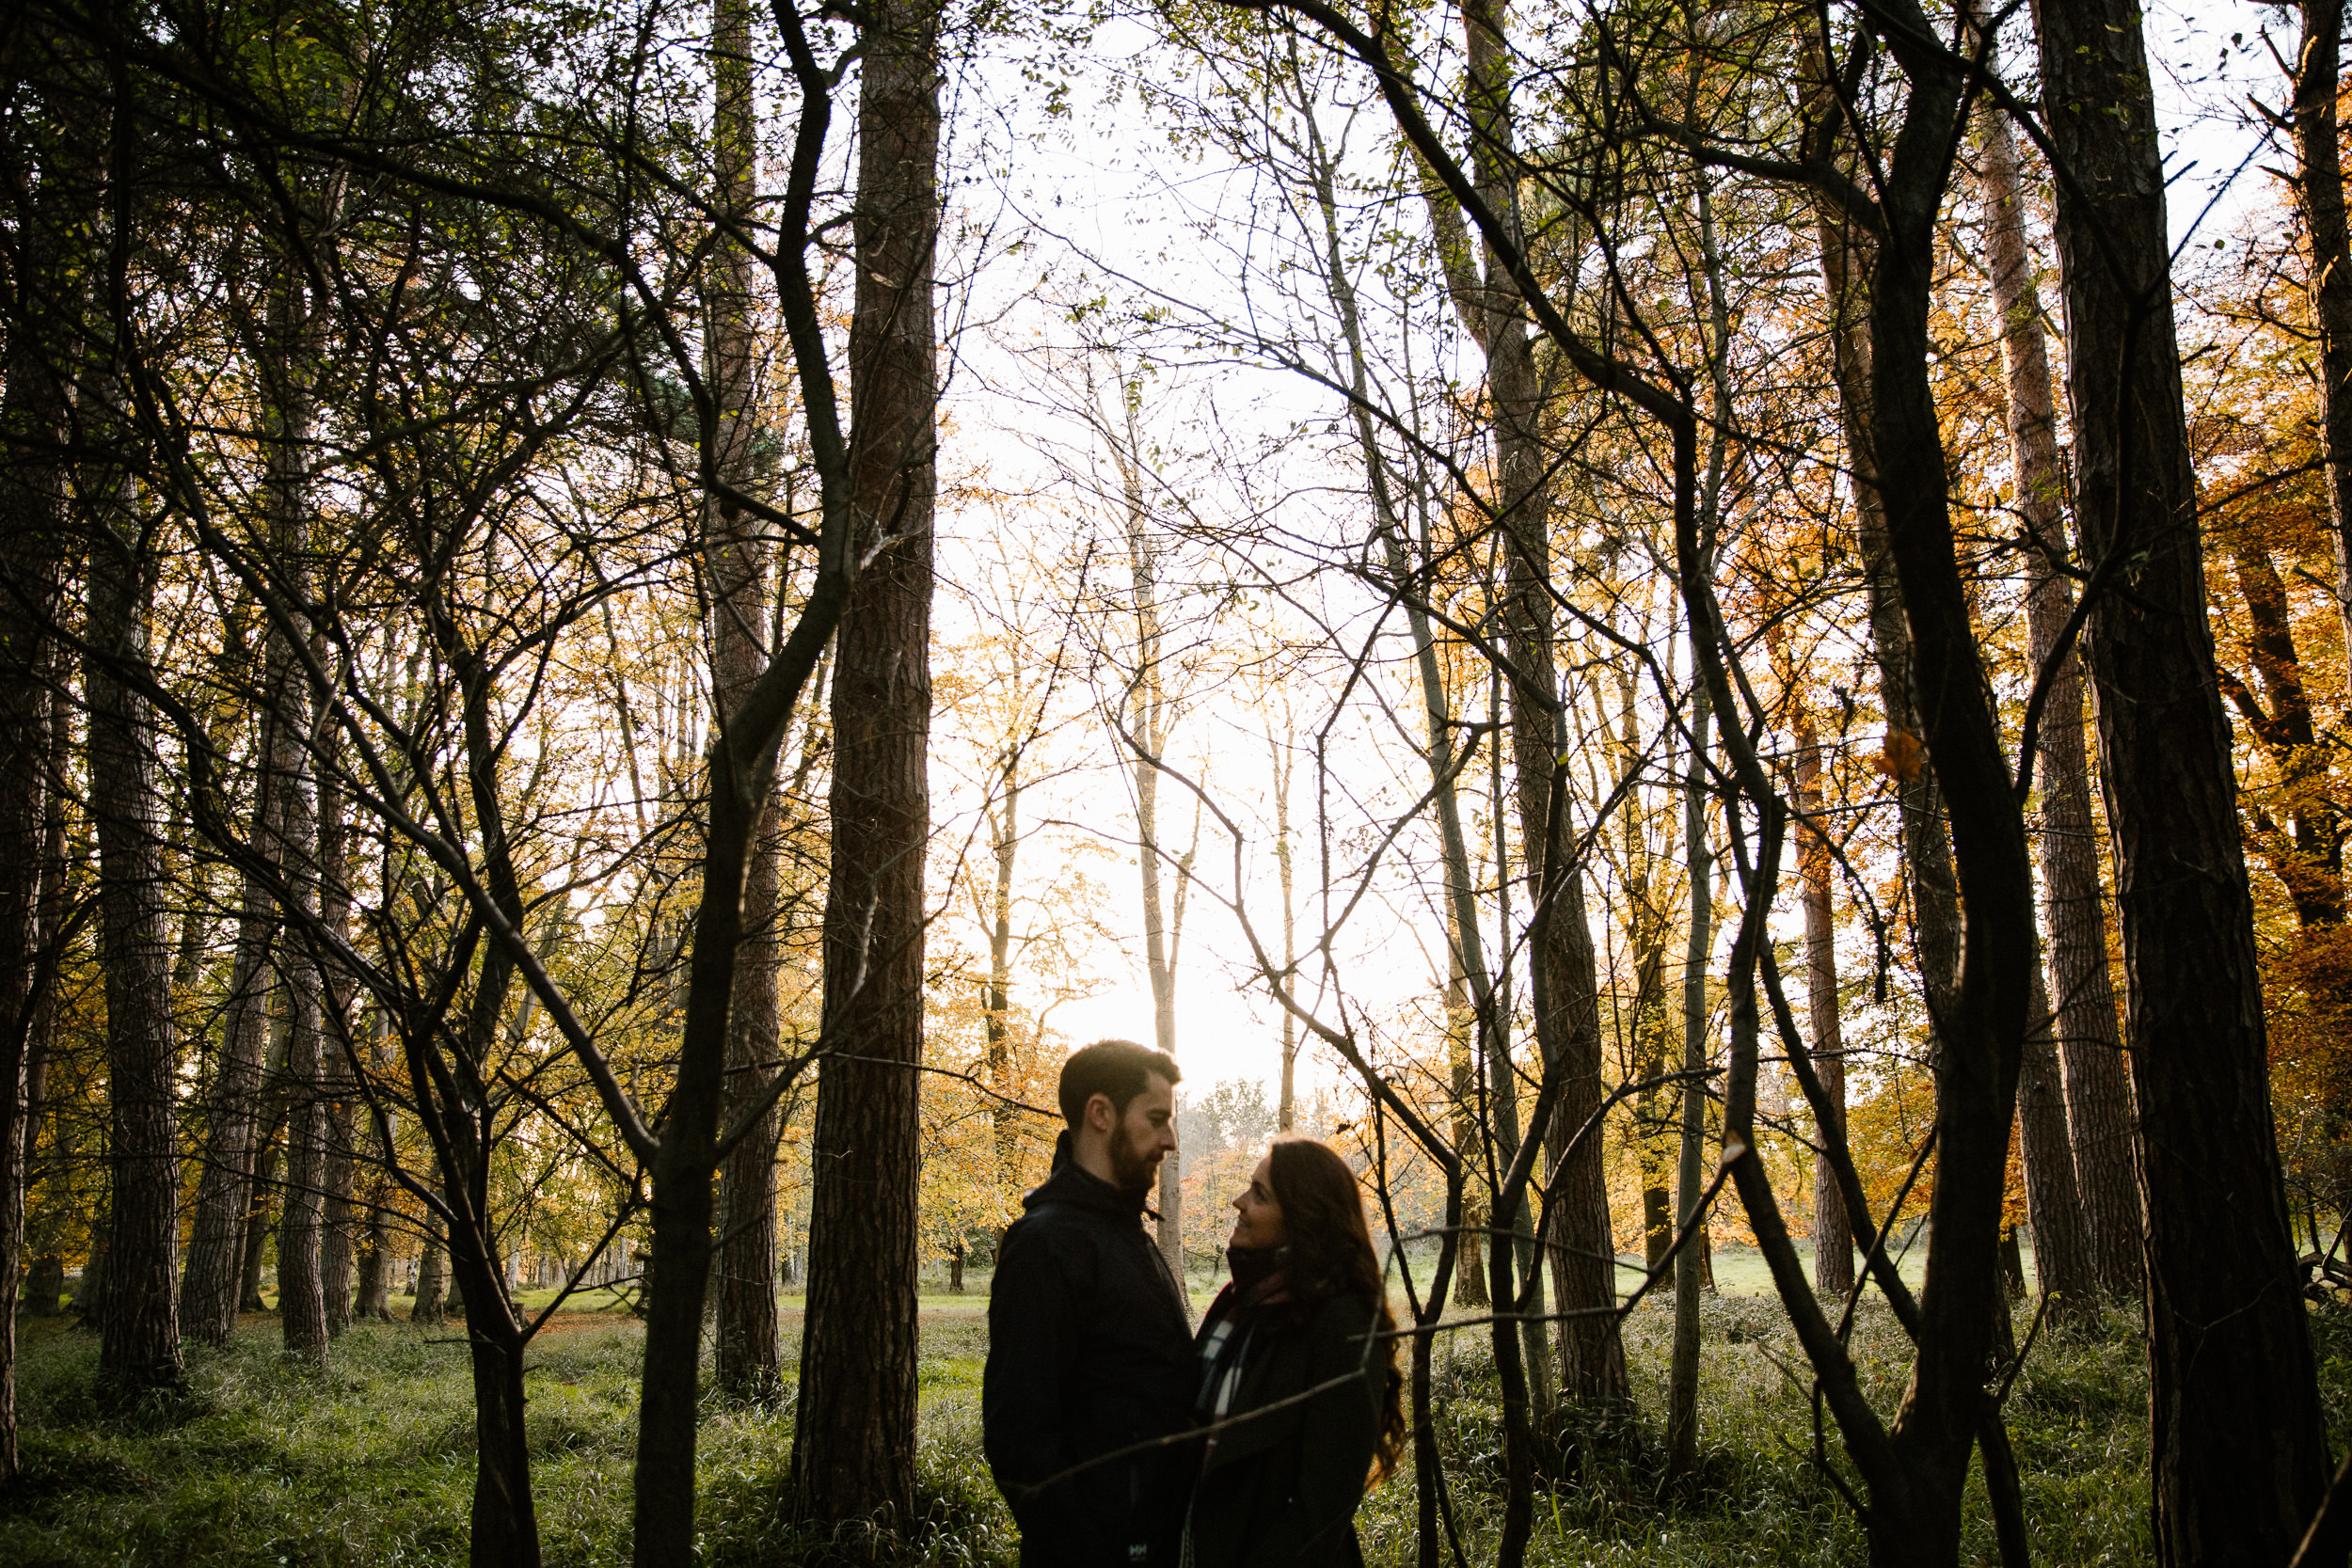 clairebyrnephotography-fun-wedding-photographer-ireland-creative-engagment-park-6.jpg